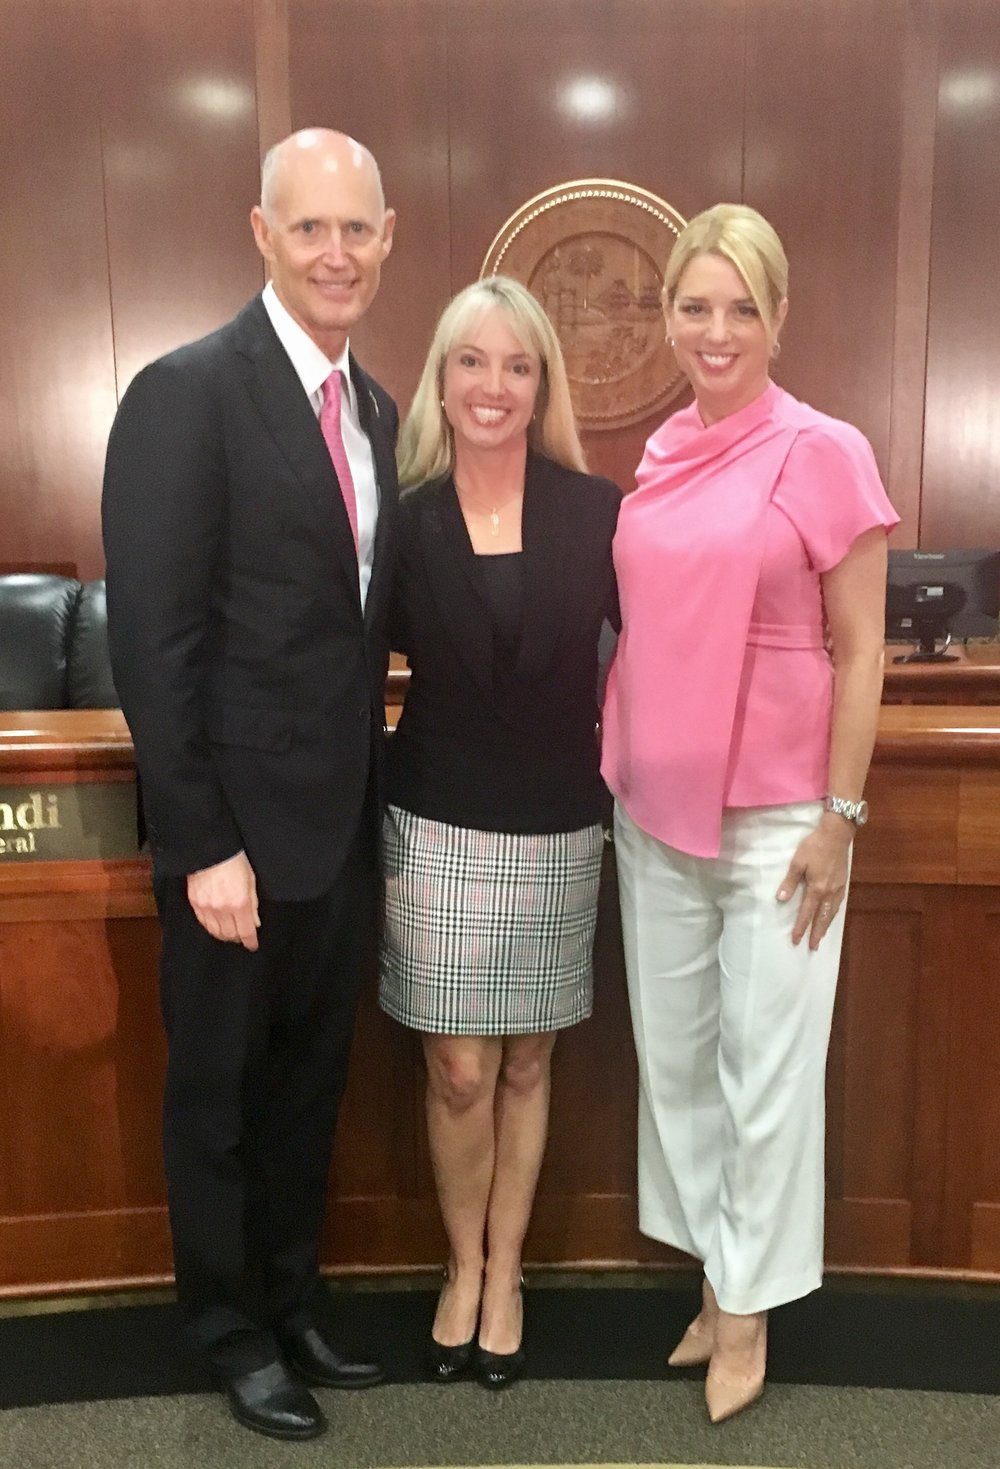 With Governor Rick Scott and Attorney General Pam Bondi at the National Crime Victims Rights Week Breakfast in Tallahassee, FL April 2017